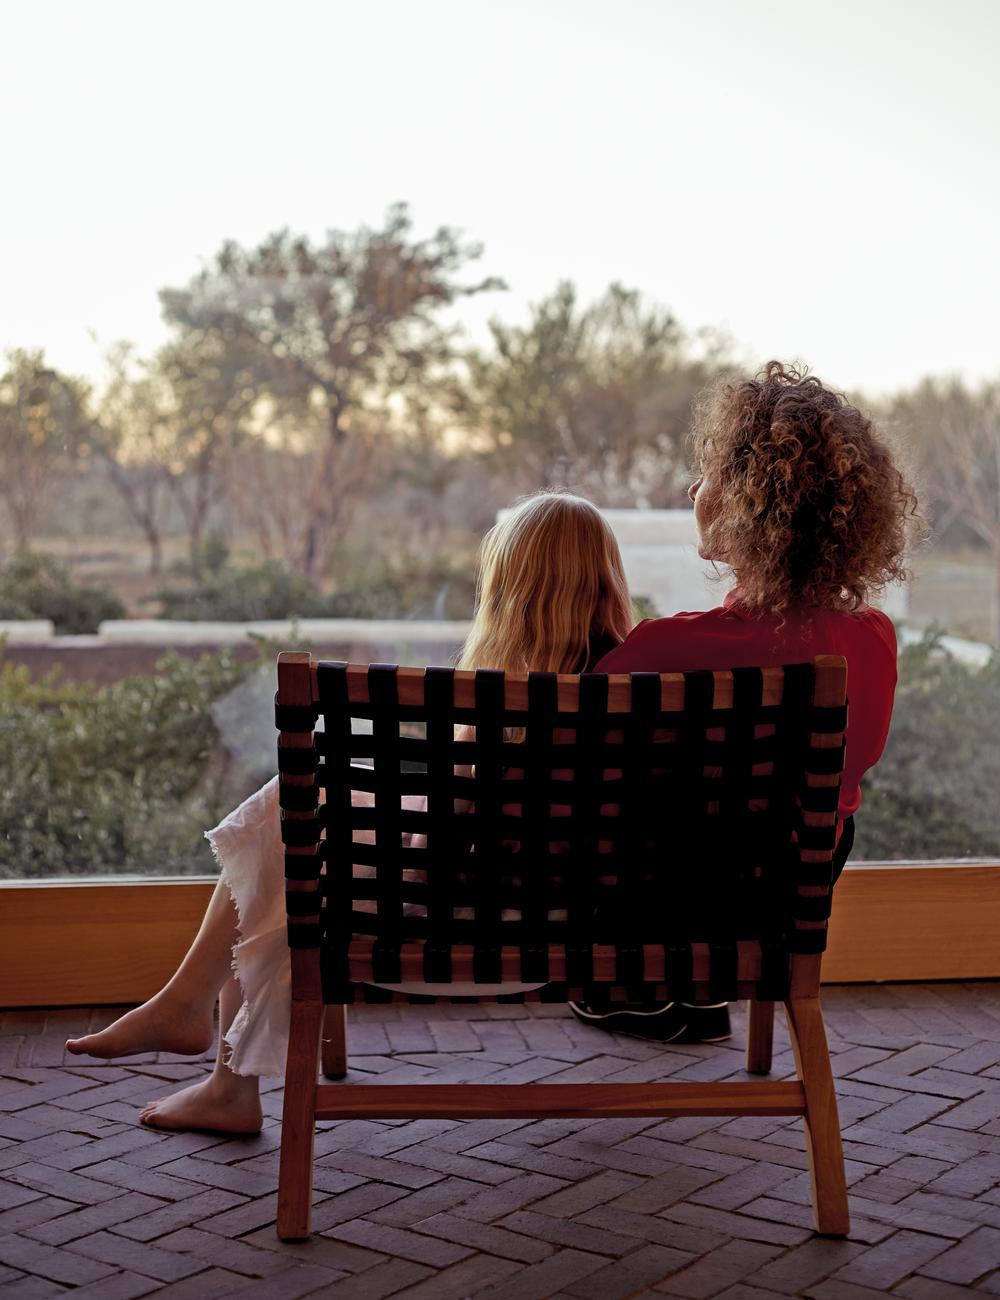 The family spend time together at the Swartberg House in South Africa, resting and recharging from their hectic life in London